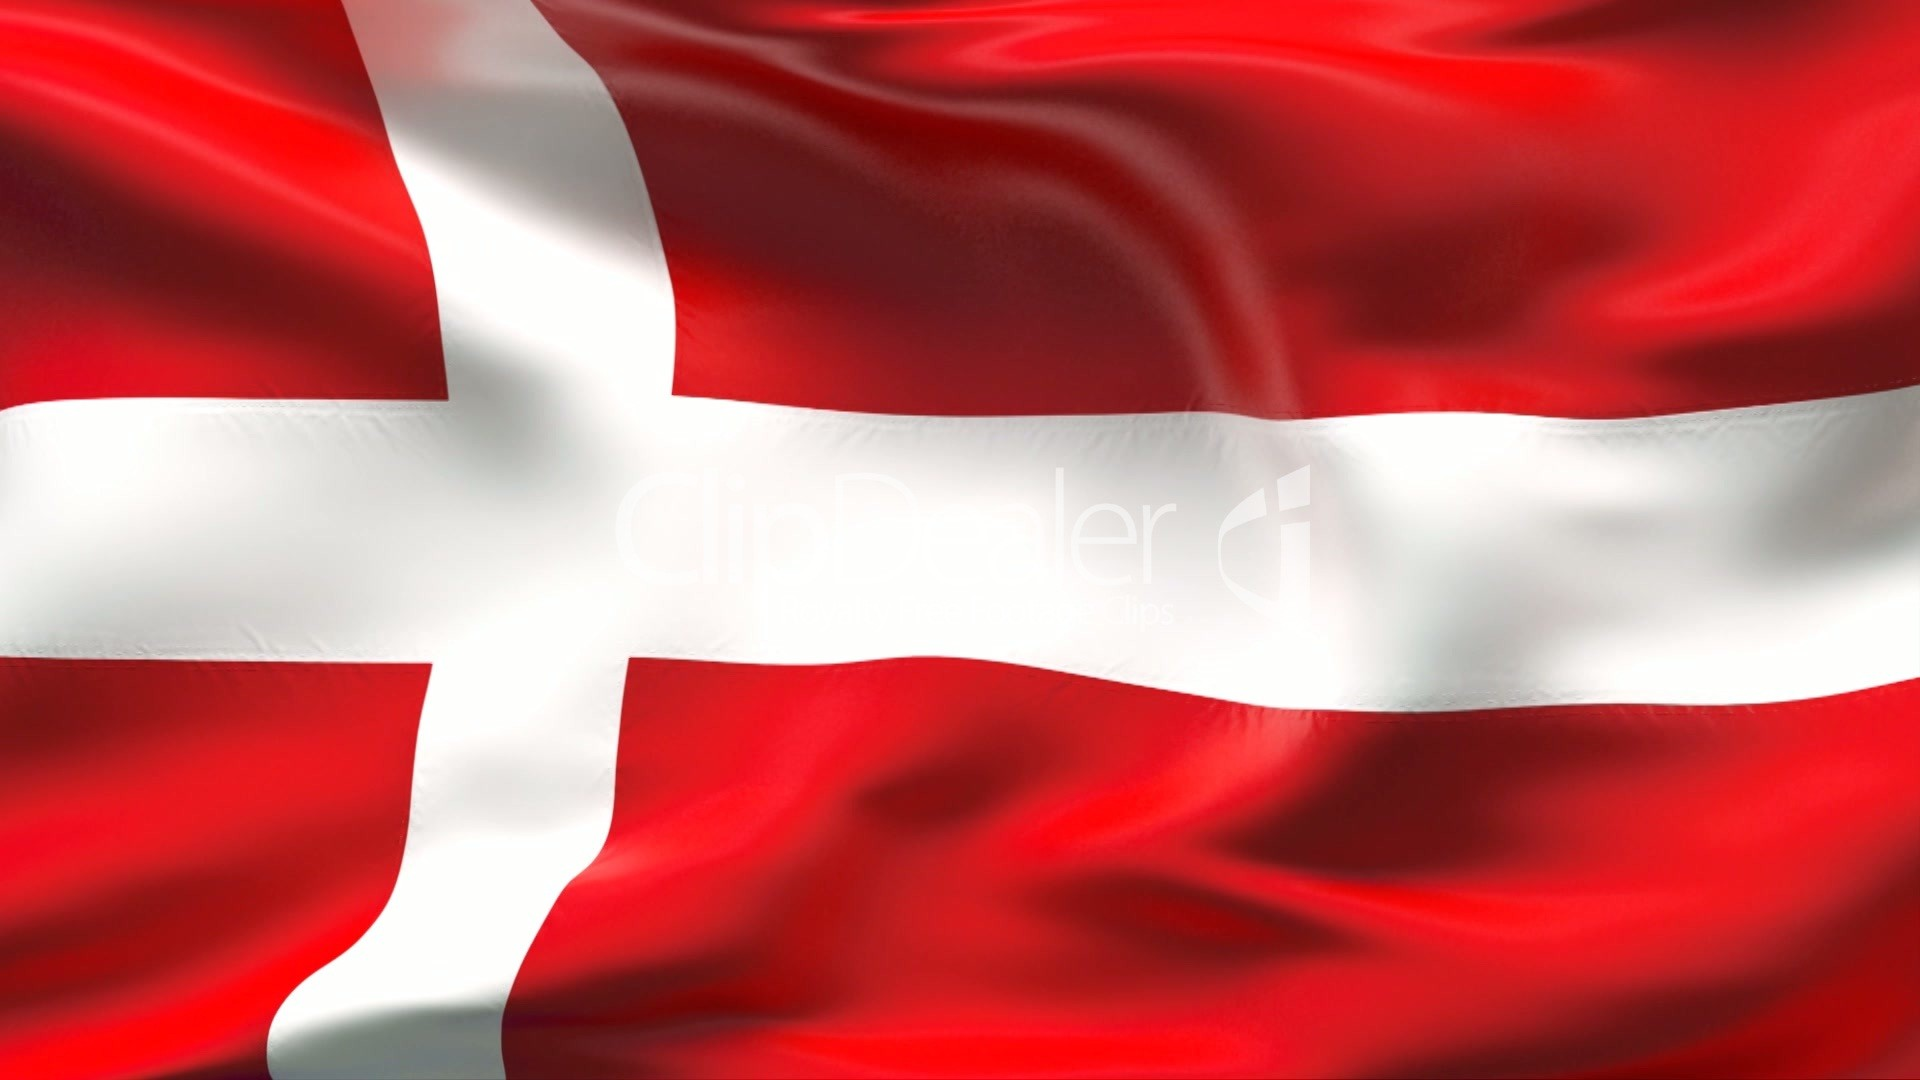 Image – Denmark-Flag-HD-Wallpapers-8-For-Desktop-Background.jpg | Swag ORG  Wiki | FANDOM powered by Wikia